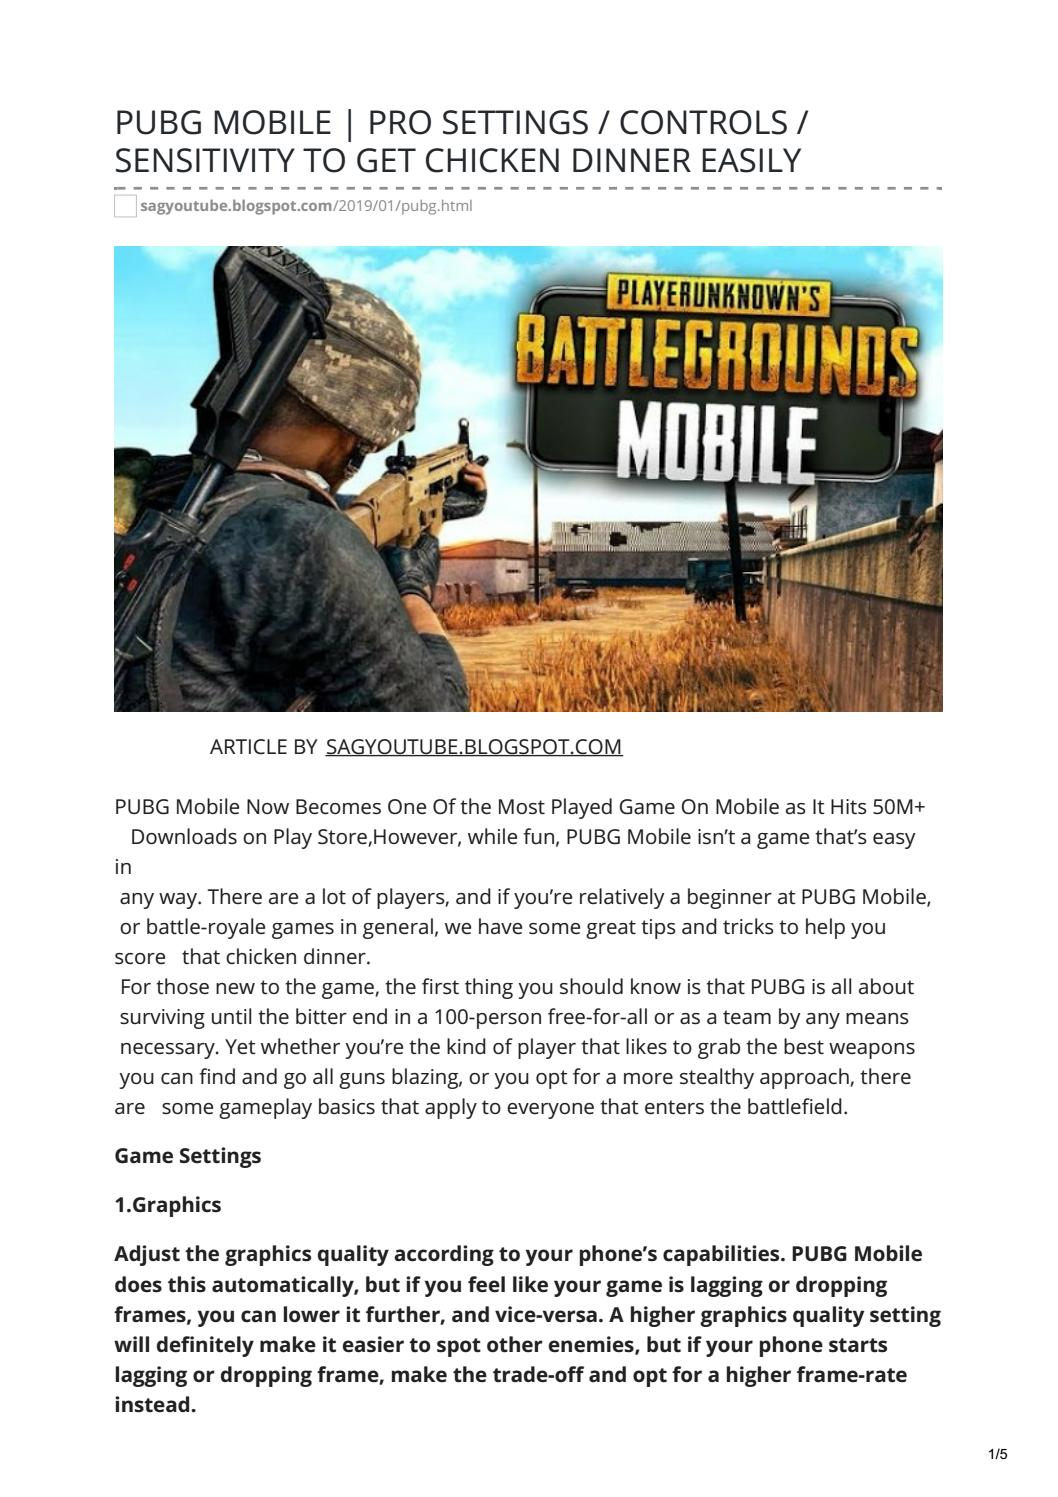 PUBG MOBILE | PRO SETTINGS / CONTROLS / SENSITIVITY TO GET